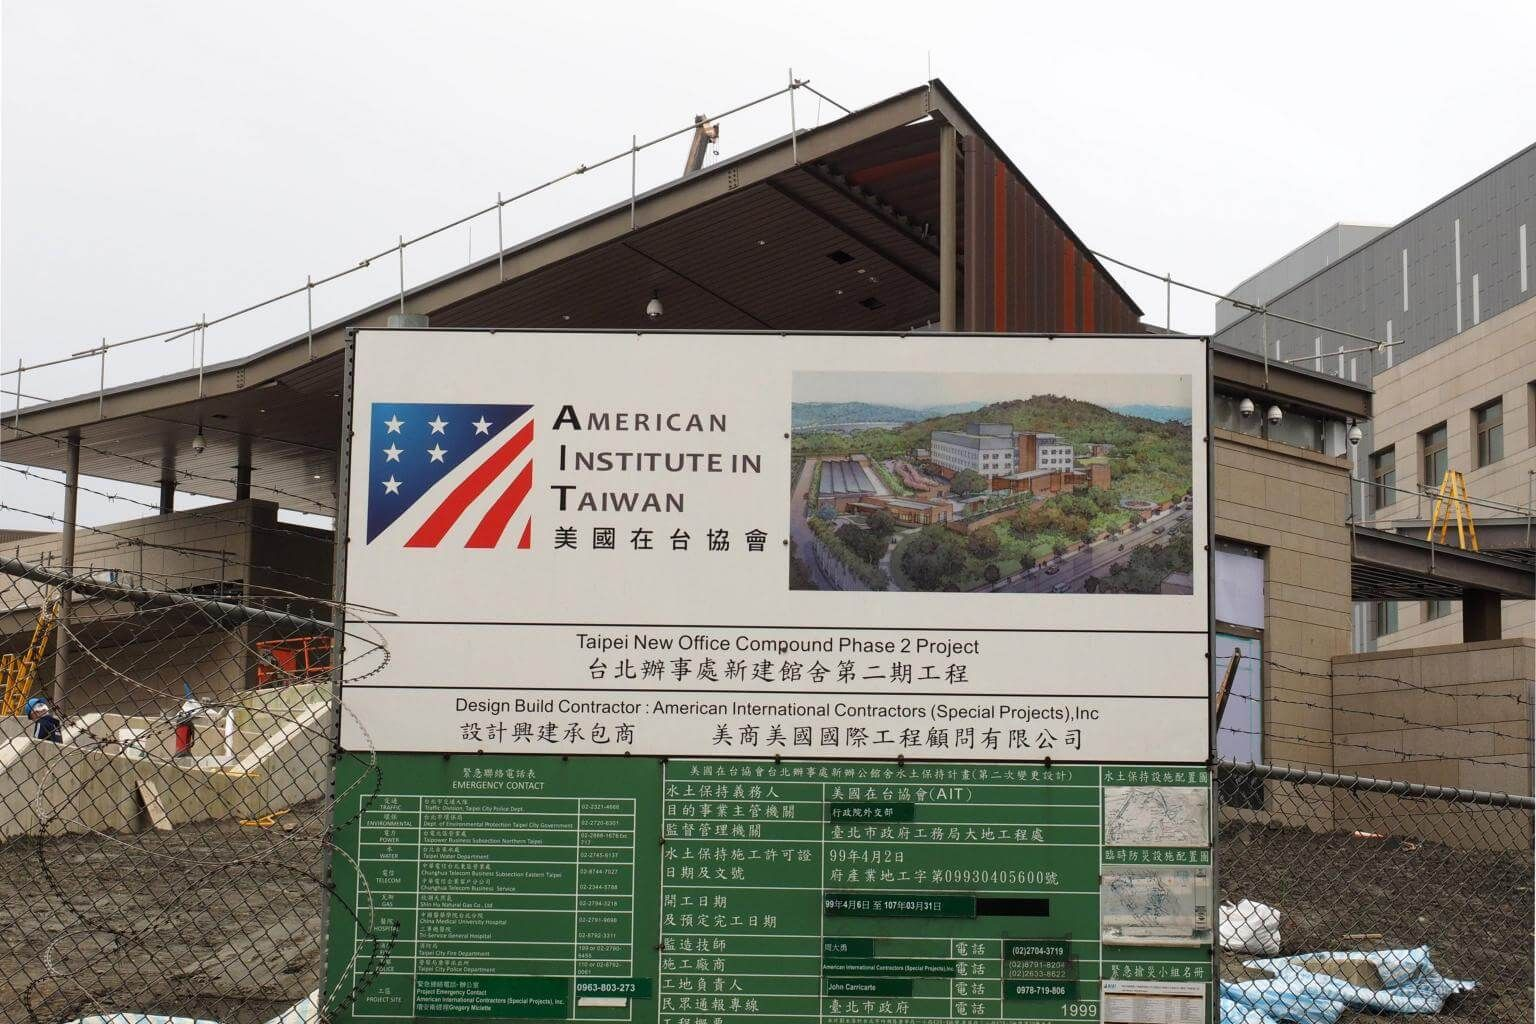 The new facility for the American Institute in Taiwan, US's de facto embassy in Taiwan has a cost of US$ 250 million and will open formally later this year